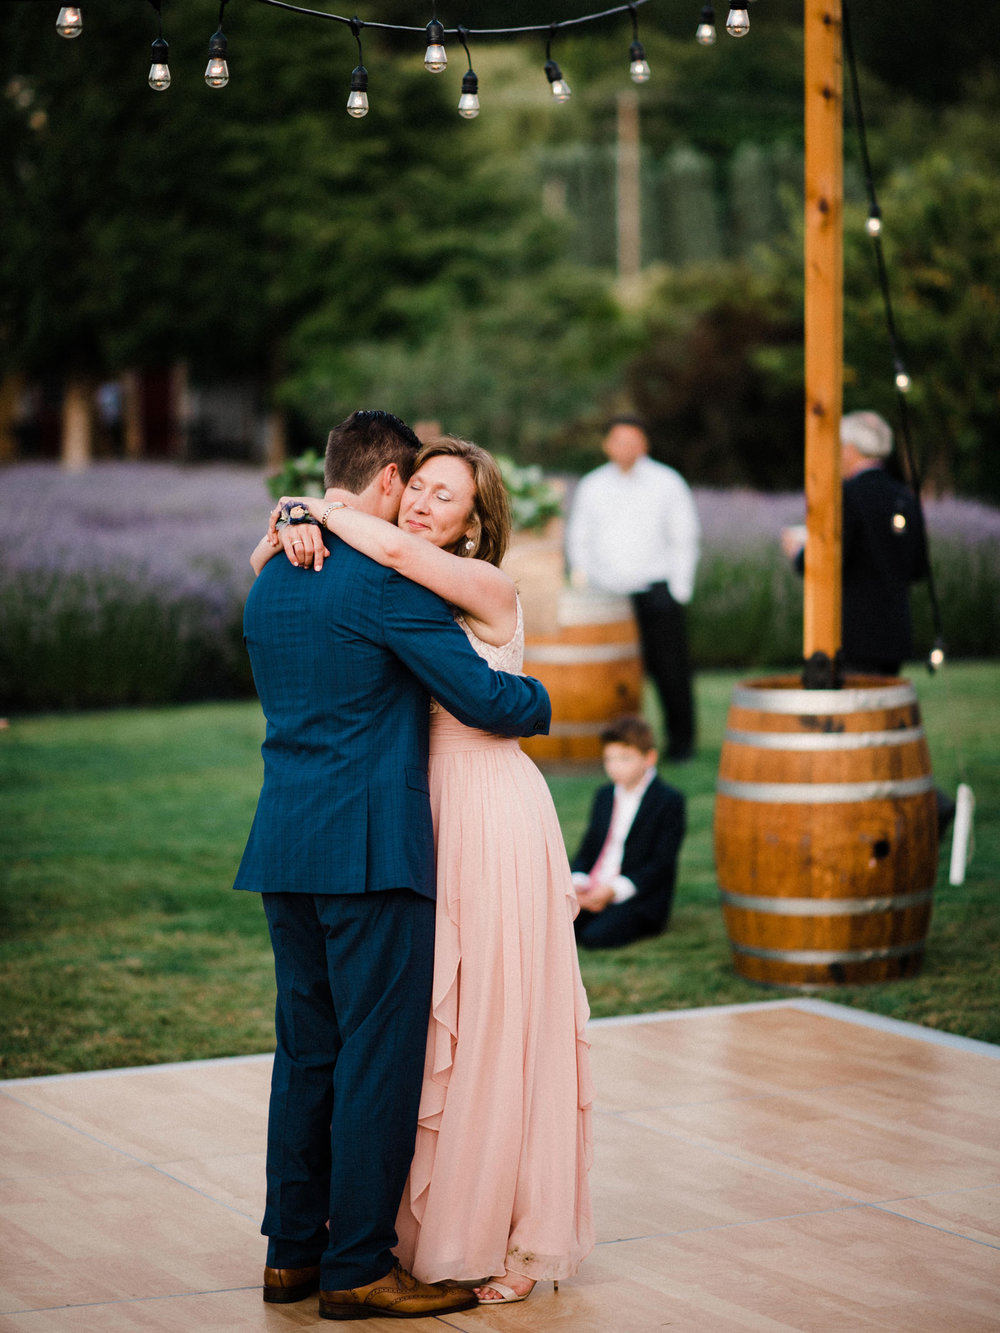 083-woodinville-lavendar-farm-wedding-with-golden-glowy-photos.jpg